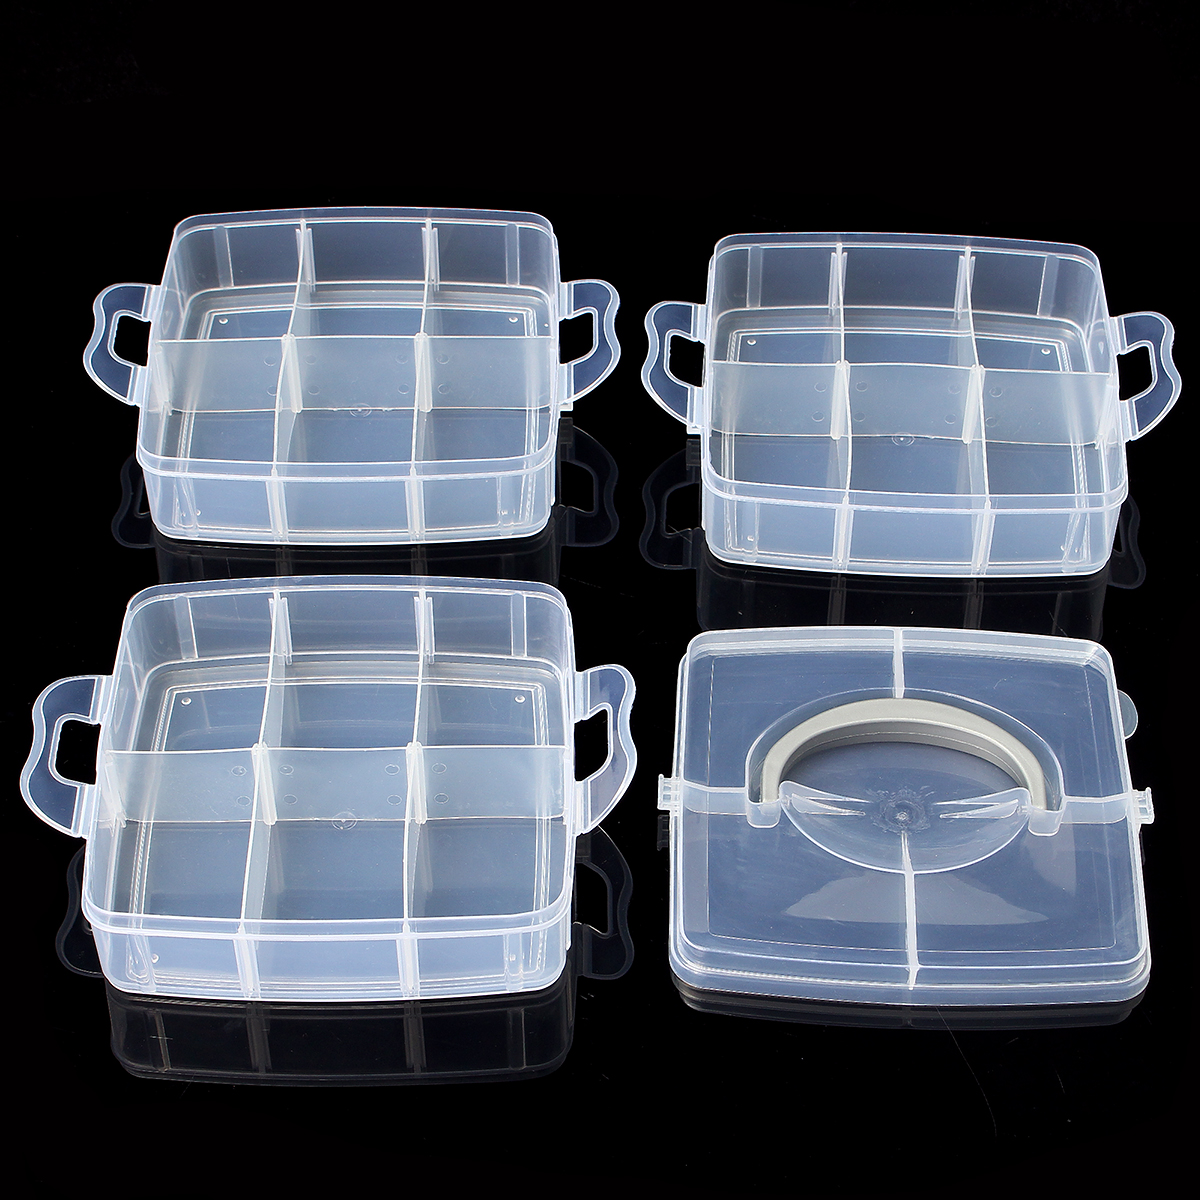 Transparent Plastic Compartment Storage Box 3 Layer Tool Jewelery Craft Beads Organizer Case